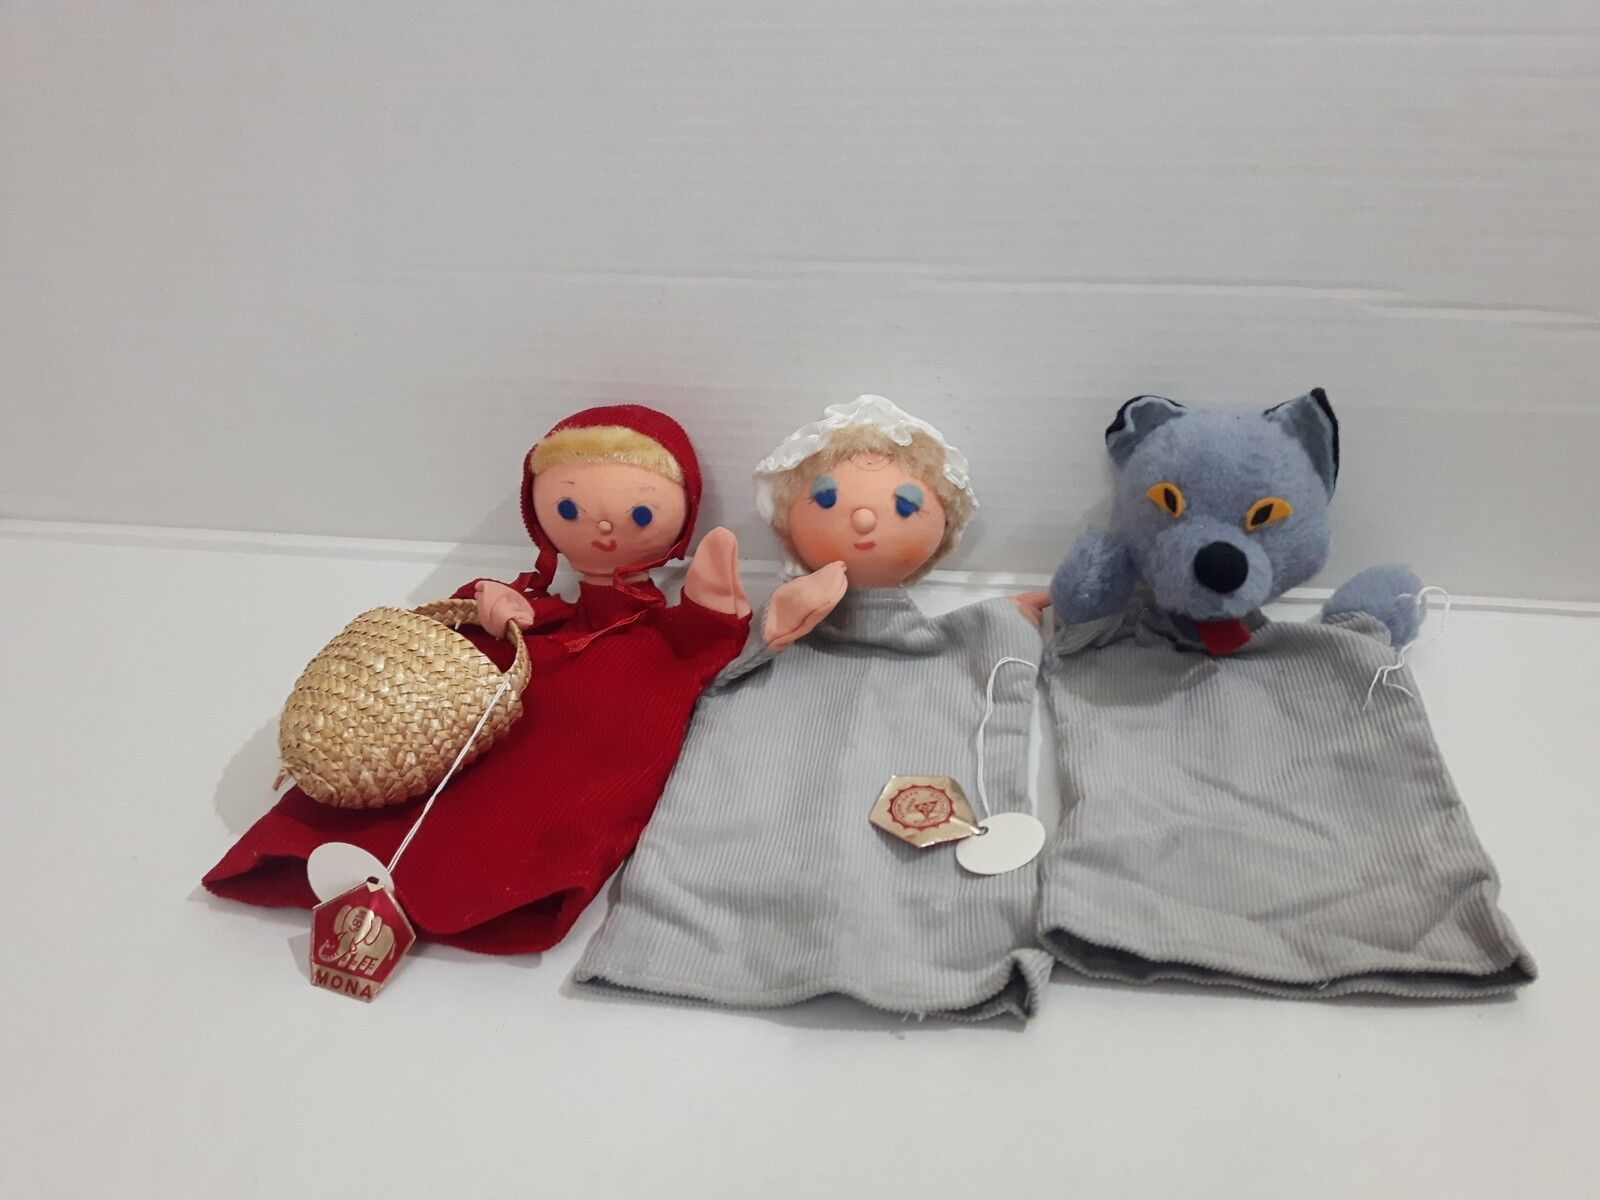 LOT VINTAGE HAND MADE PUPPETS MONA CZECH LITTLE rosso RIDING HOOD BAD WOLF GRANNY